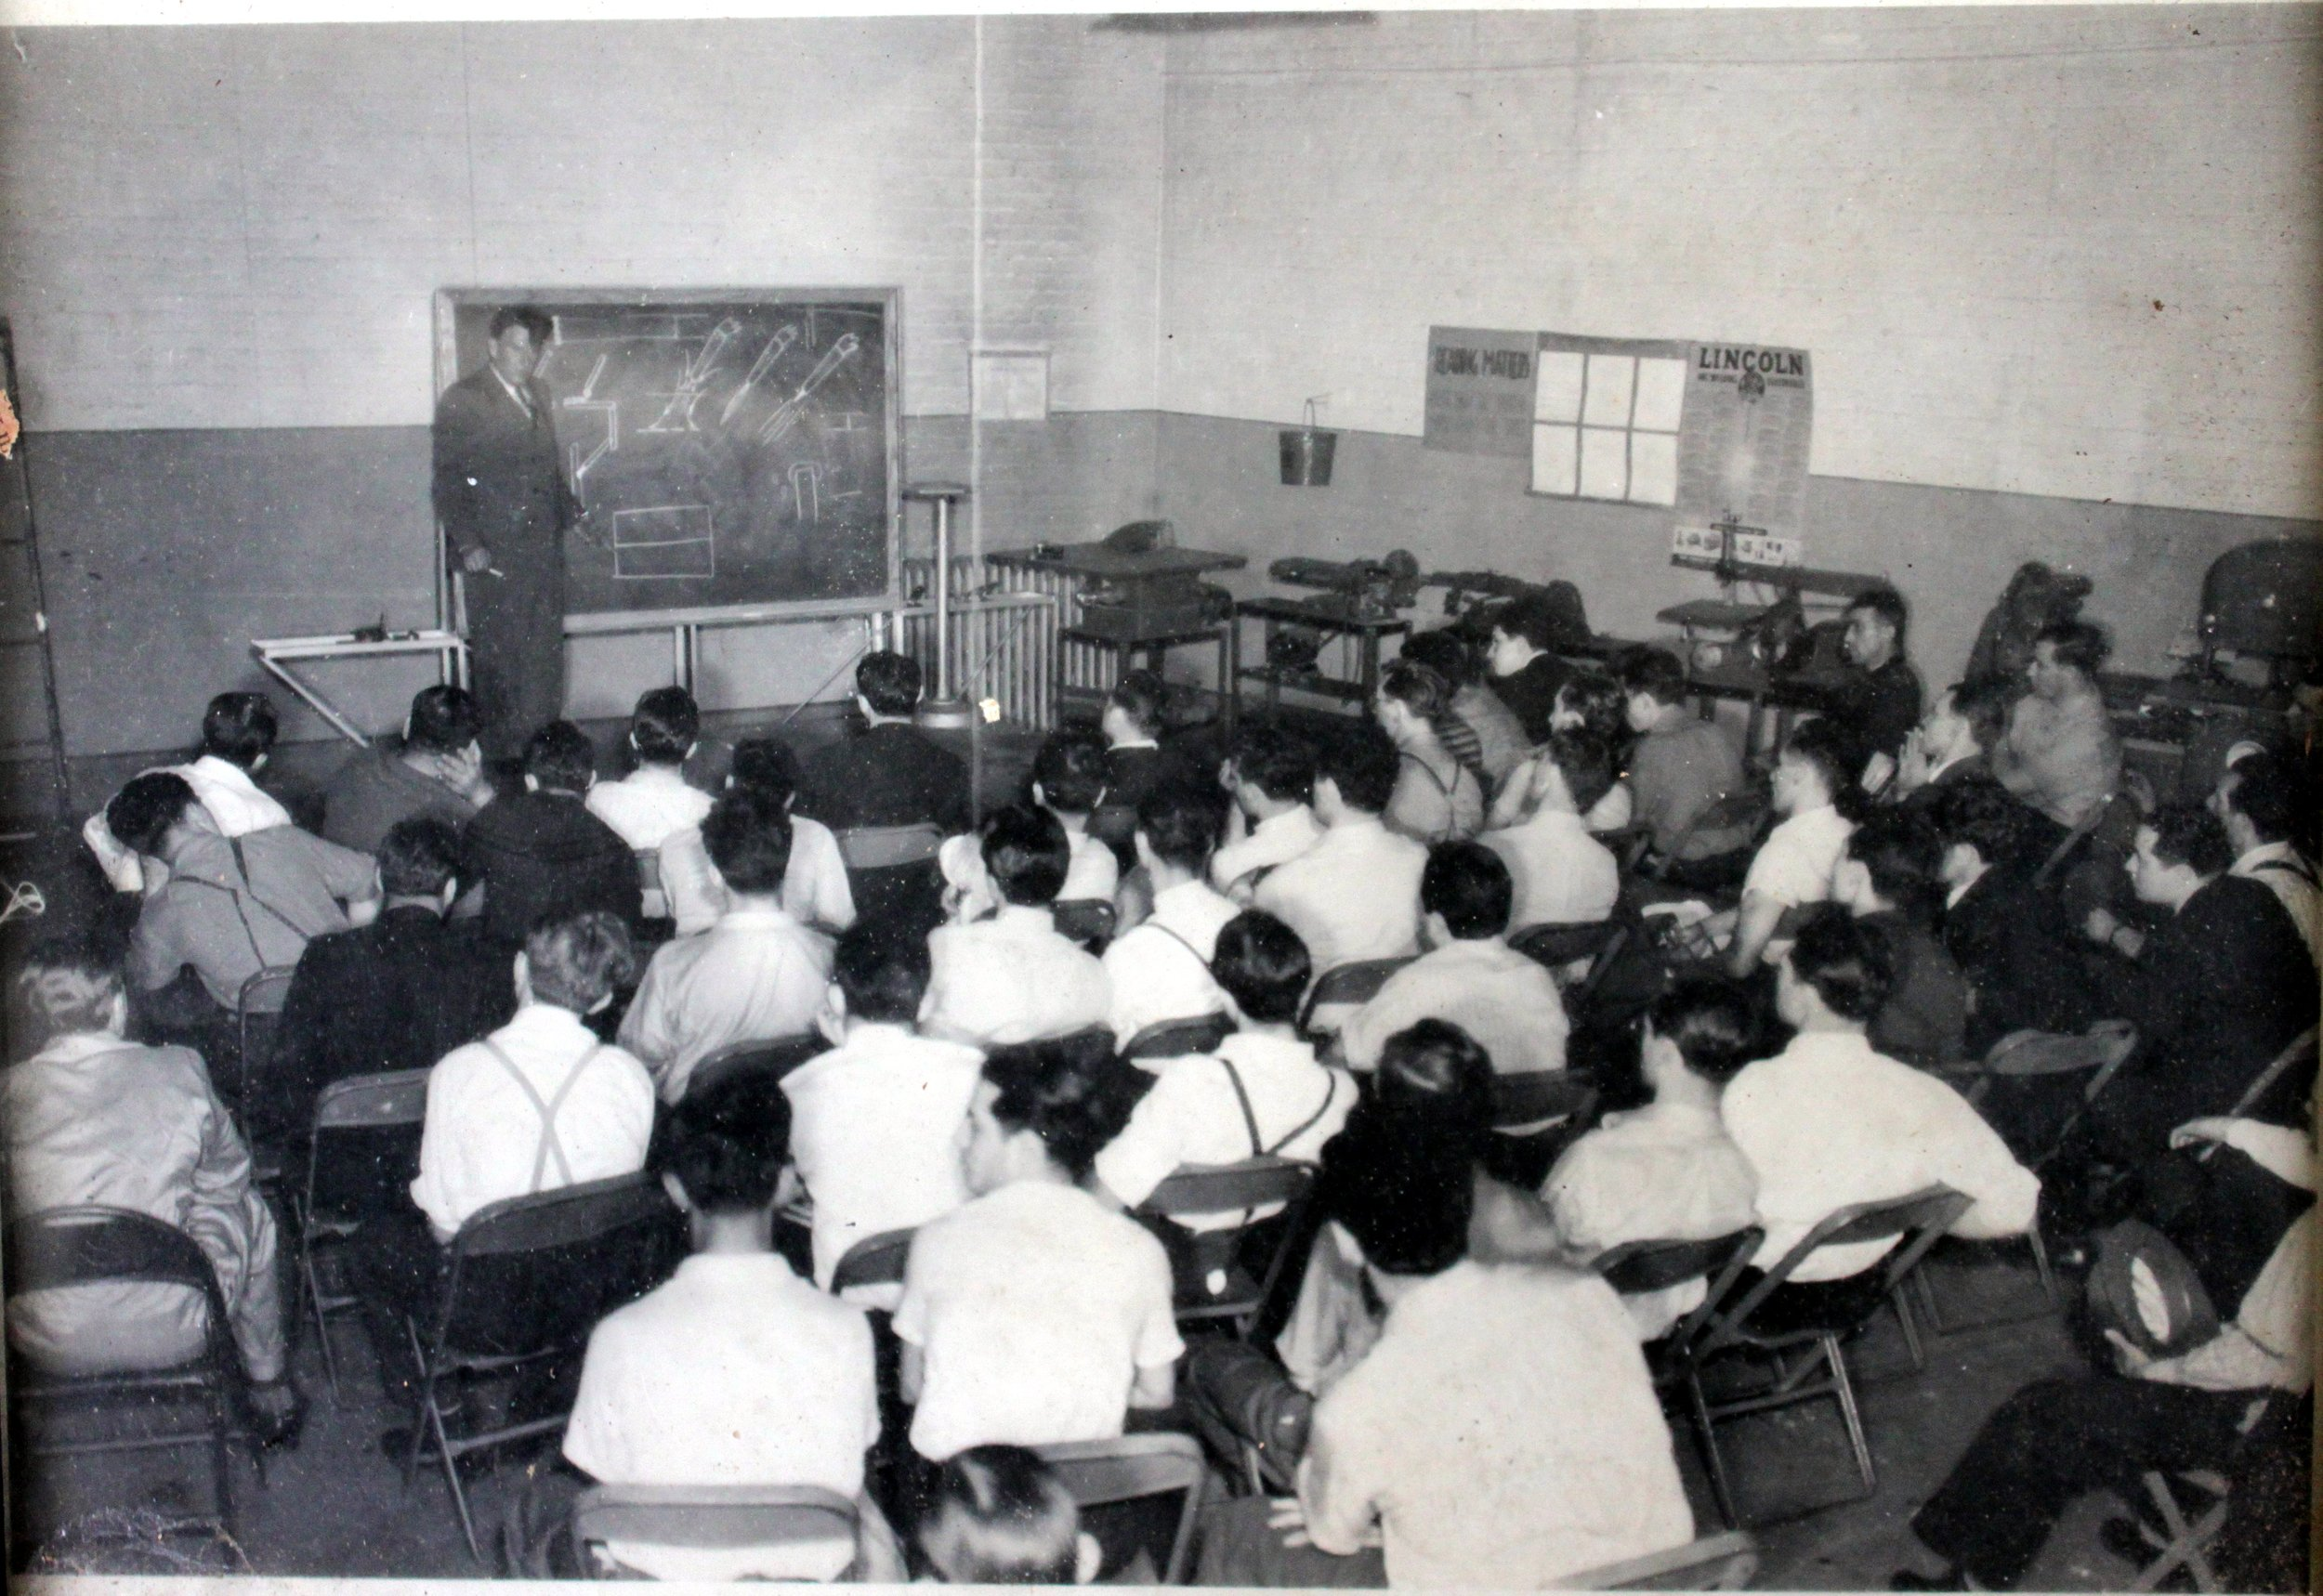 William Wicks lecturing to a class on the use of welding torches.